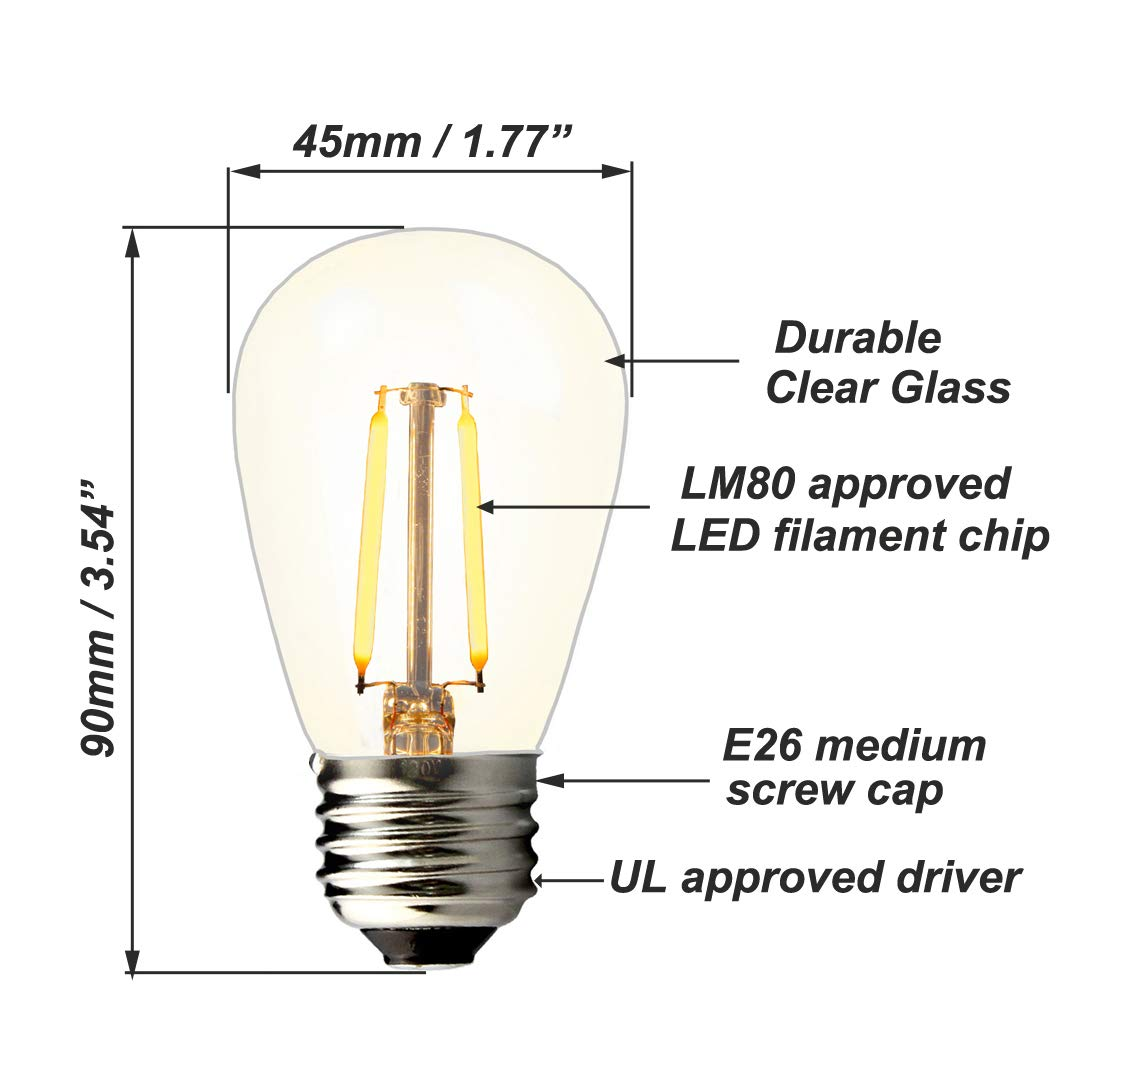 BRIMAX - (25PACK) - 2W S14 LED Outdoor Edison Light Bulbs for String Light Replacement, E26 Medium Screw Base, Dimmable, 2700K, 2Watt to Replace 11w/20w/25w Incandescent Bulb, Weatherproof by BRIMAX (Image #3)